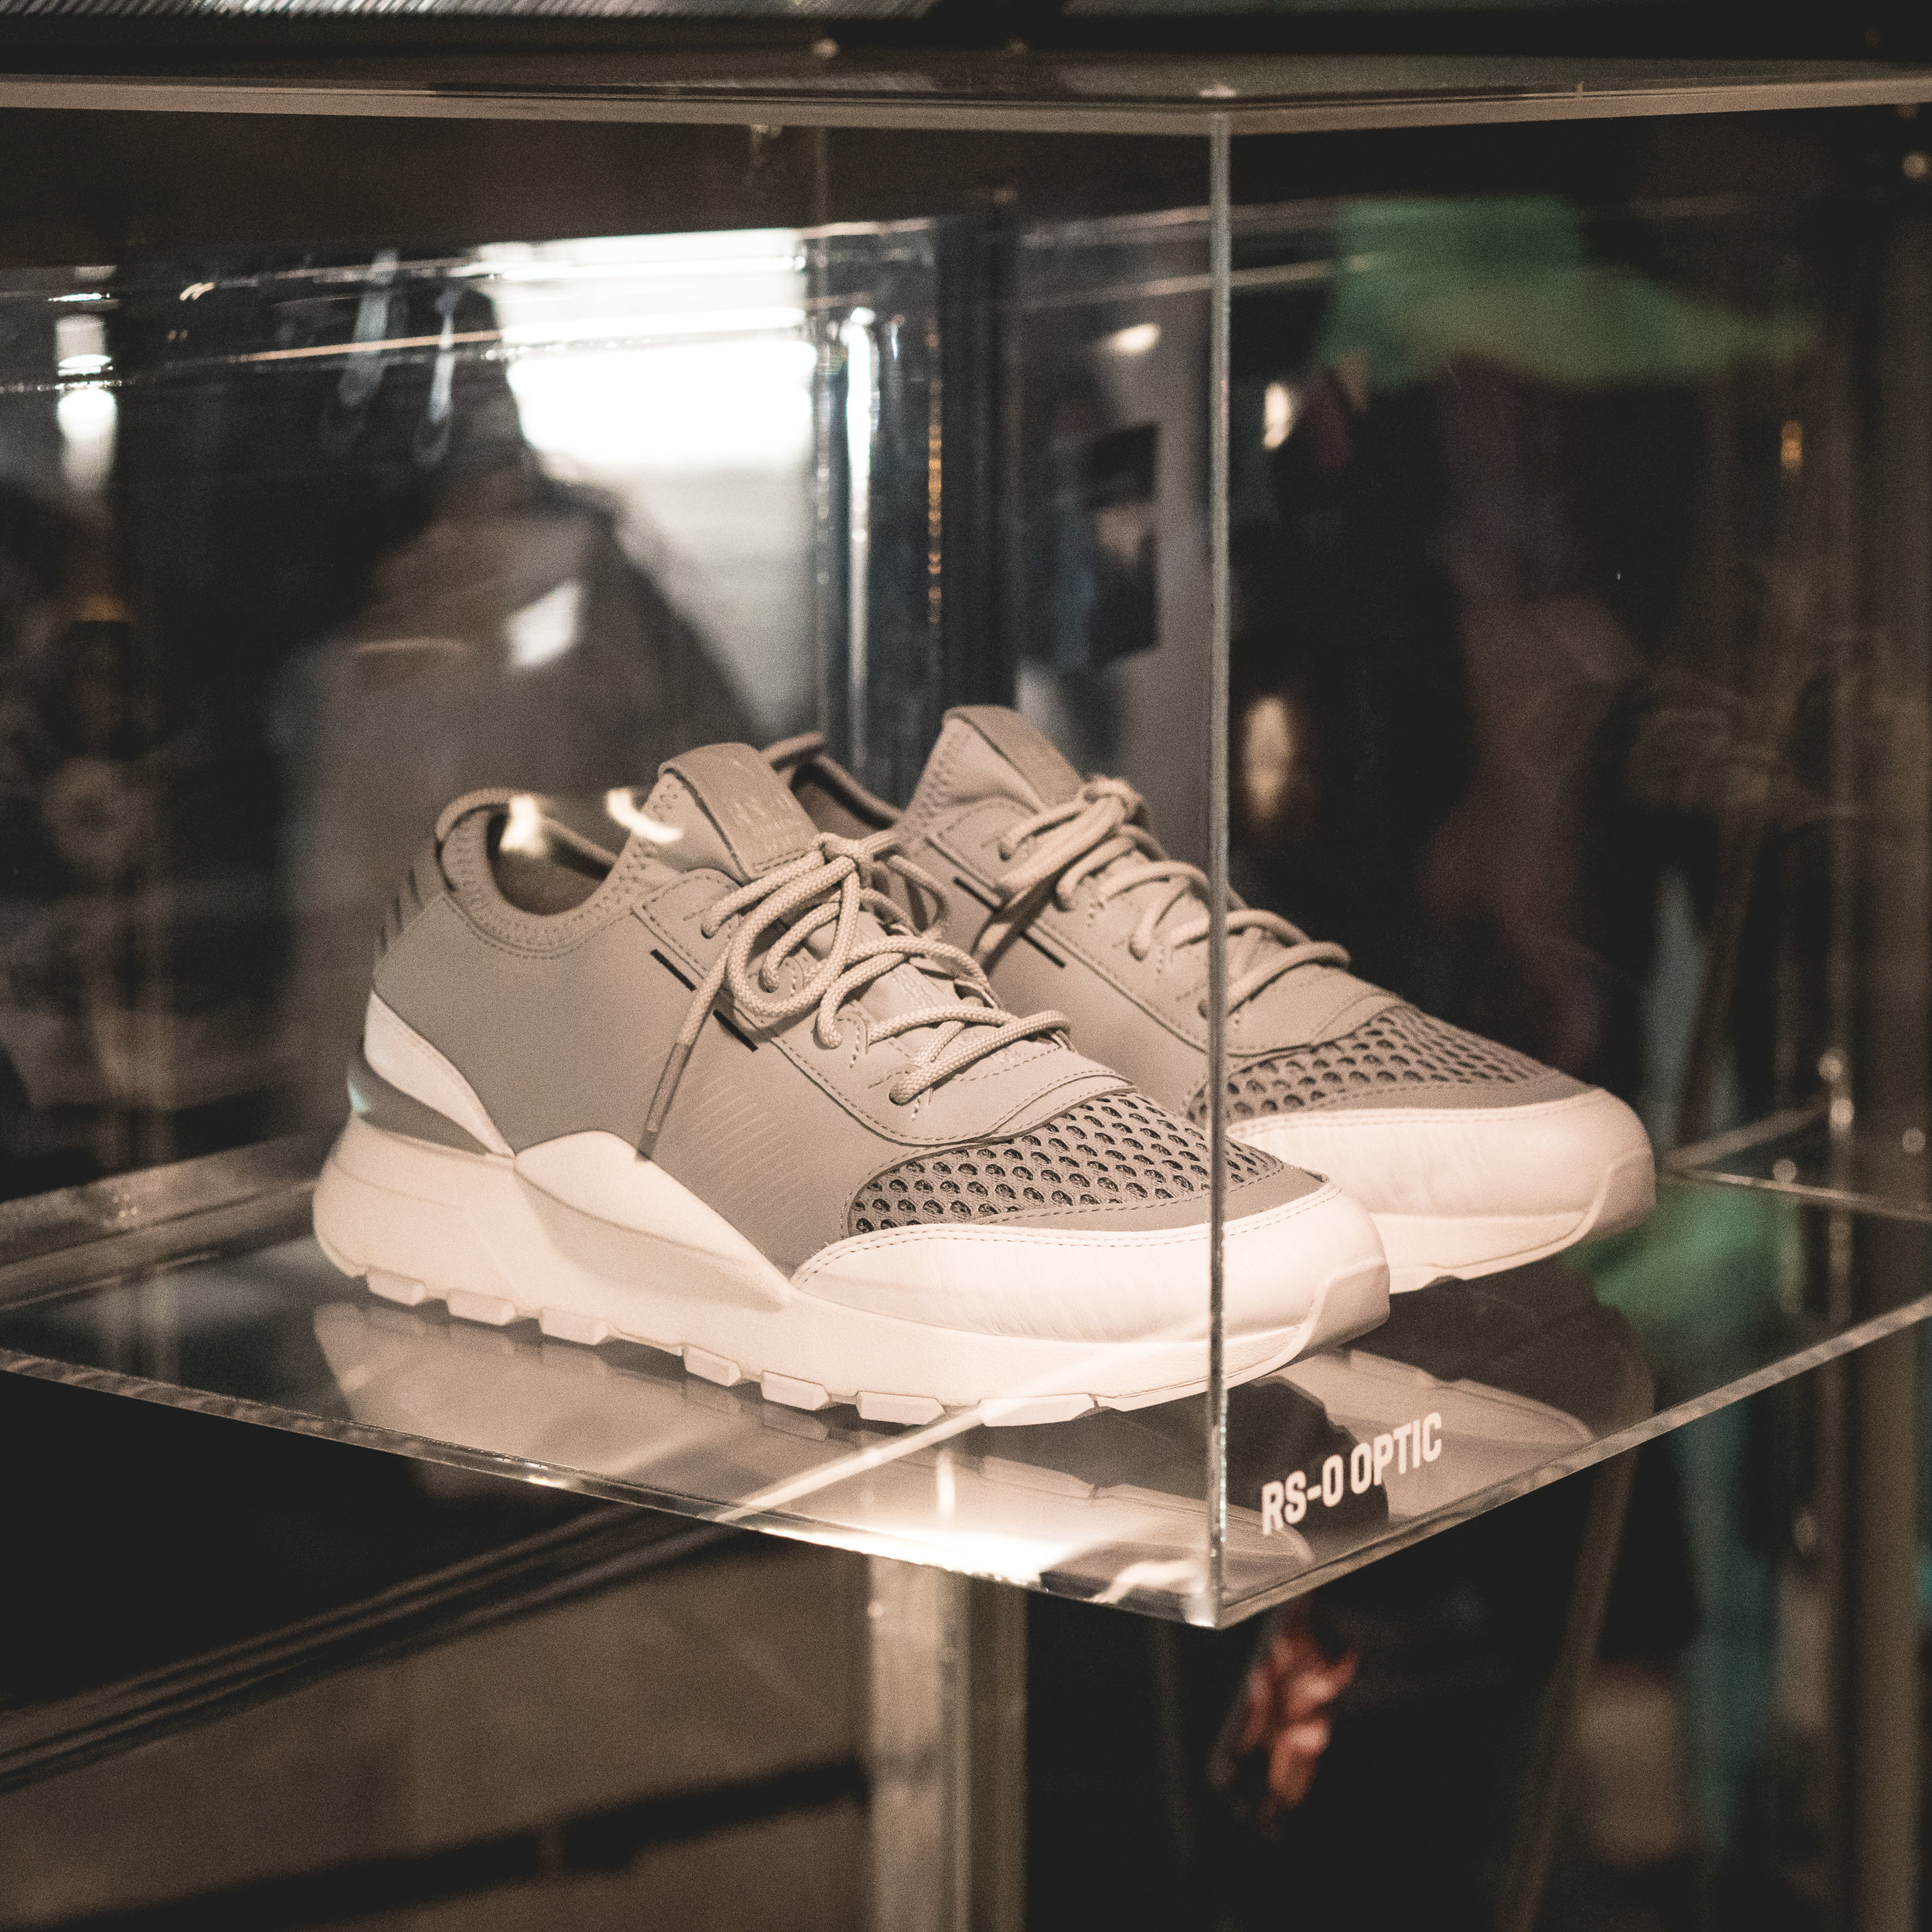 """Puma RS-0 """"Optic"""" - Remind me to bring a flash next time"""